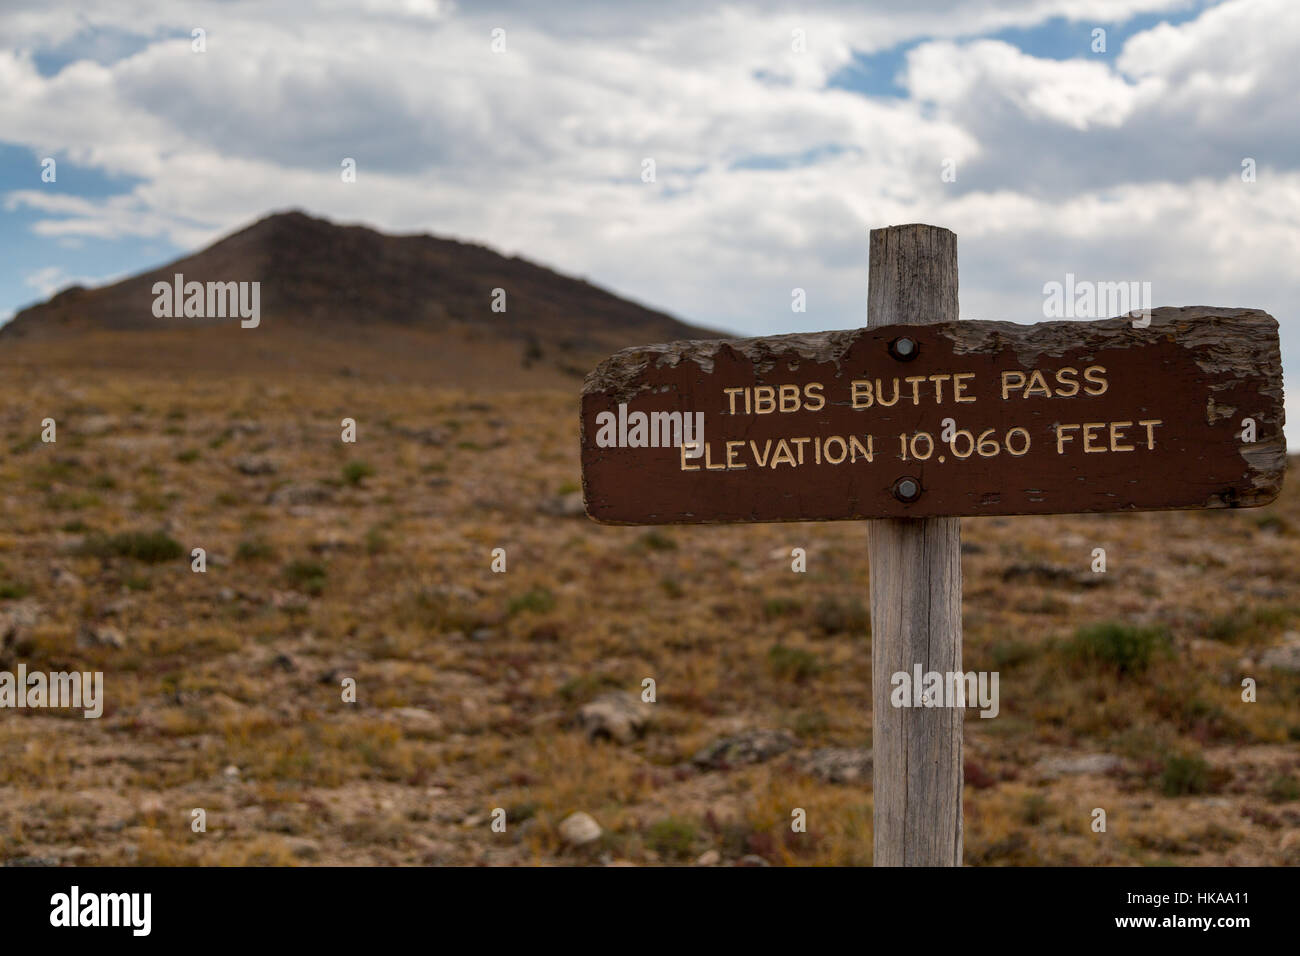 A sign marking the elevation for Tibbs Butte Pass along the Beartooth Loop Trail. Shoshone National Forest, Wyoming - Stock Image